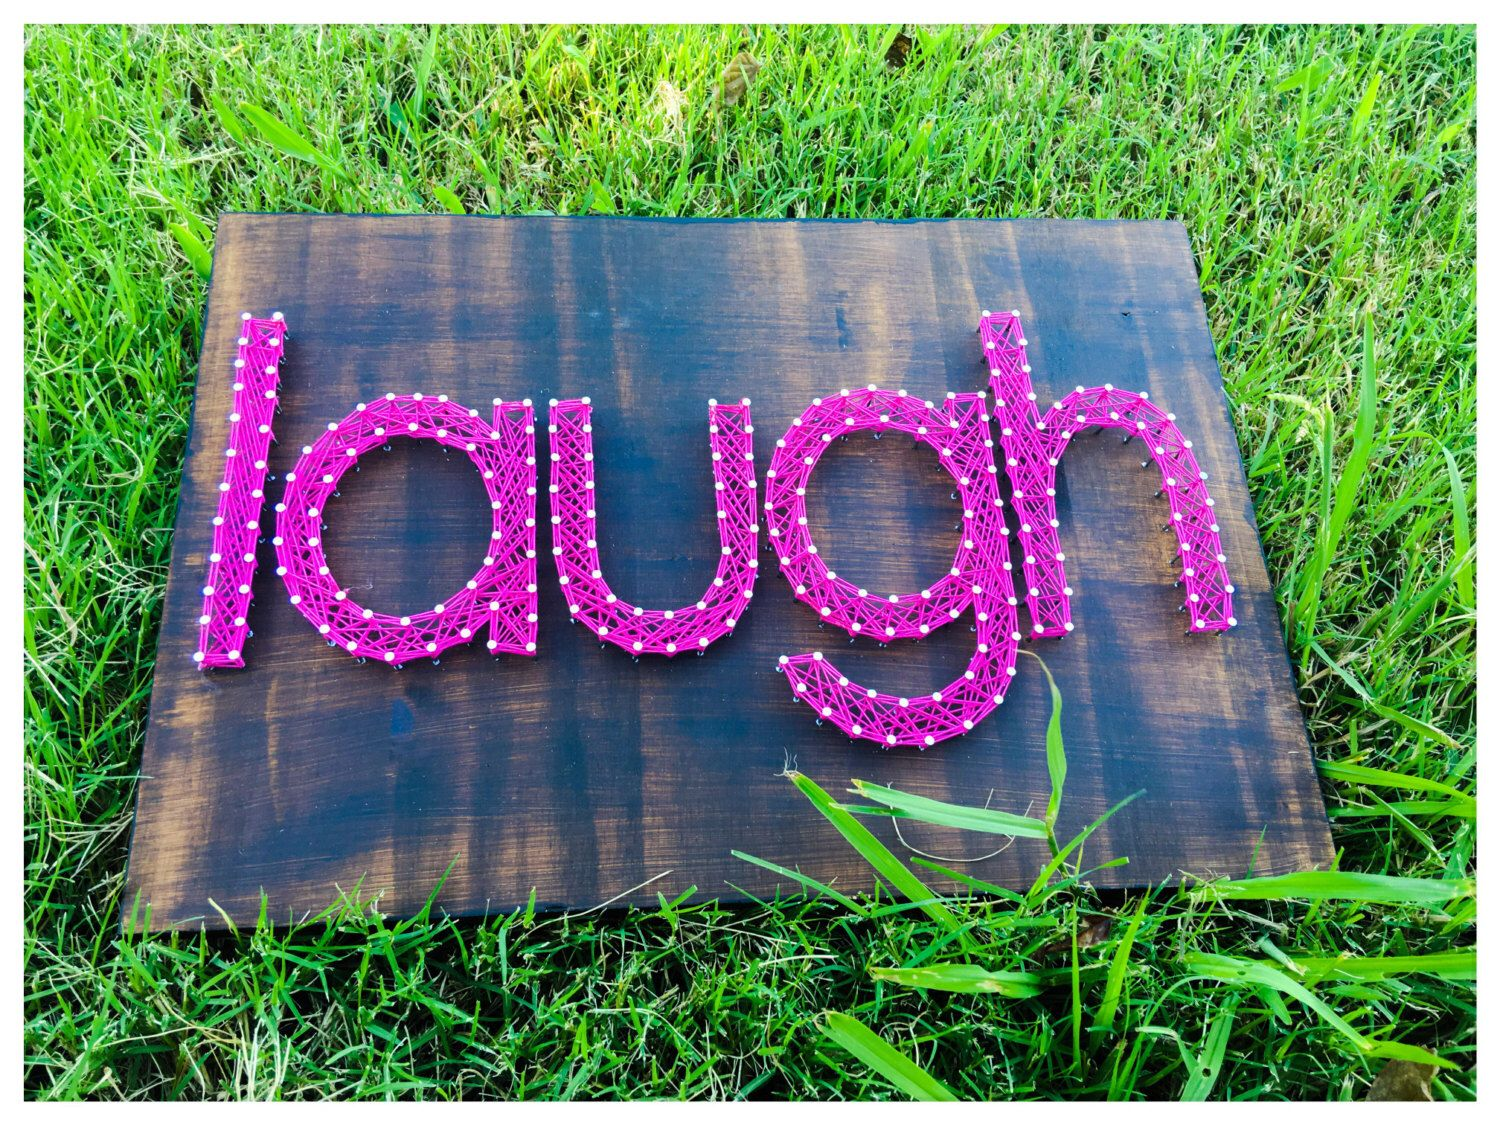 Made To Order Custom Word String Art! by NataliesRusticJunk on Etsy https://www.etsy.com/listing/479672491/made-to-order-custom-word-string-art